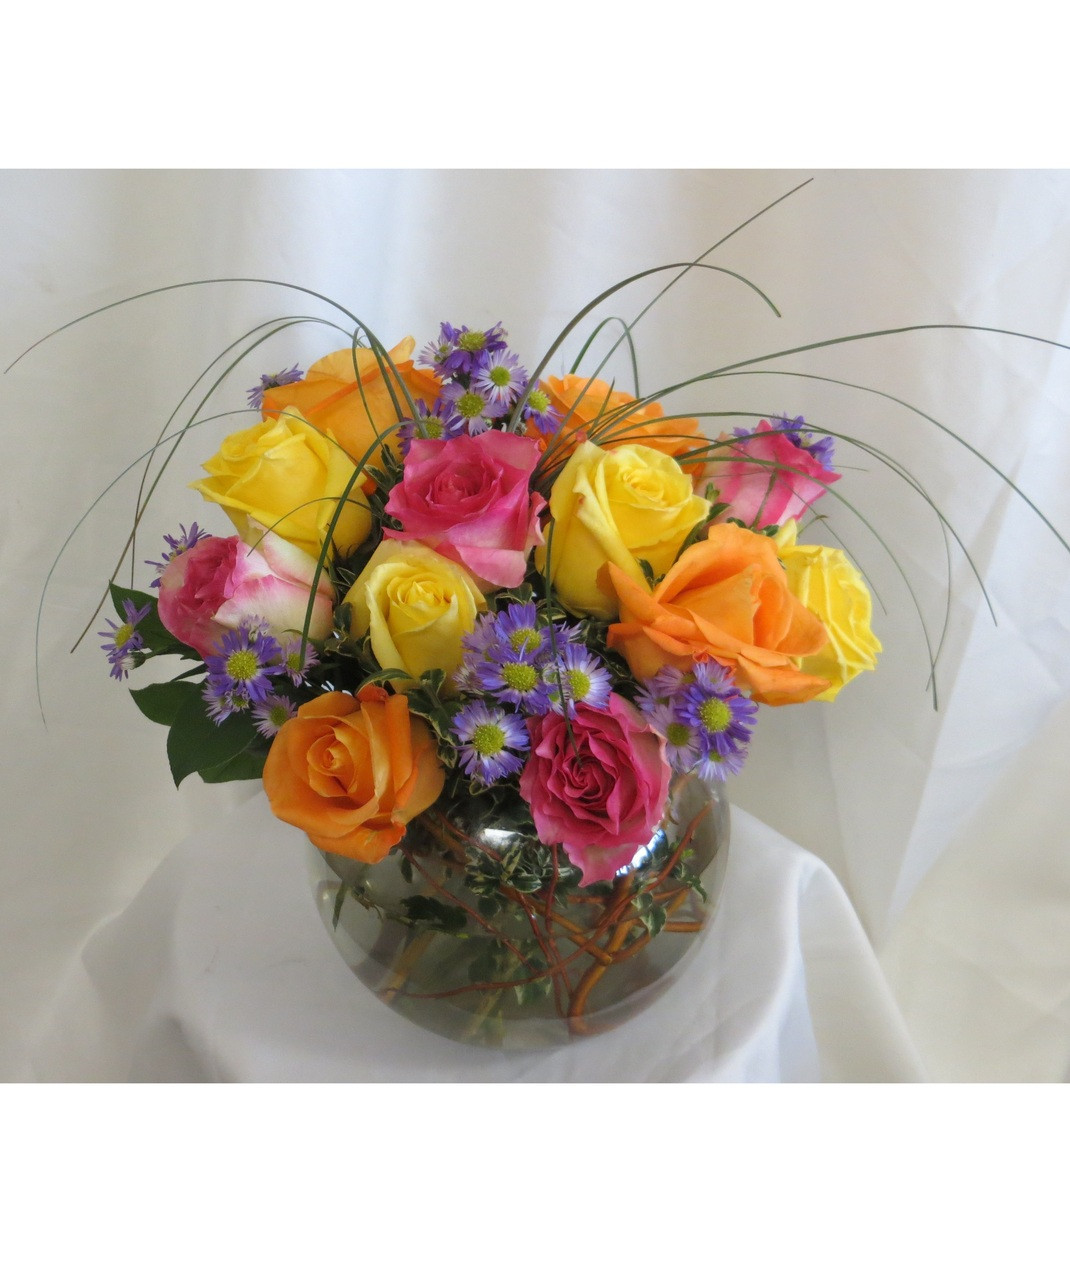 Bright Colored Dozen Roses In Glass Bowl For A Flower Delivery In